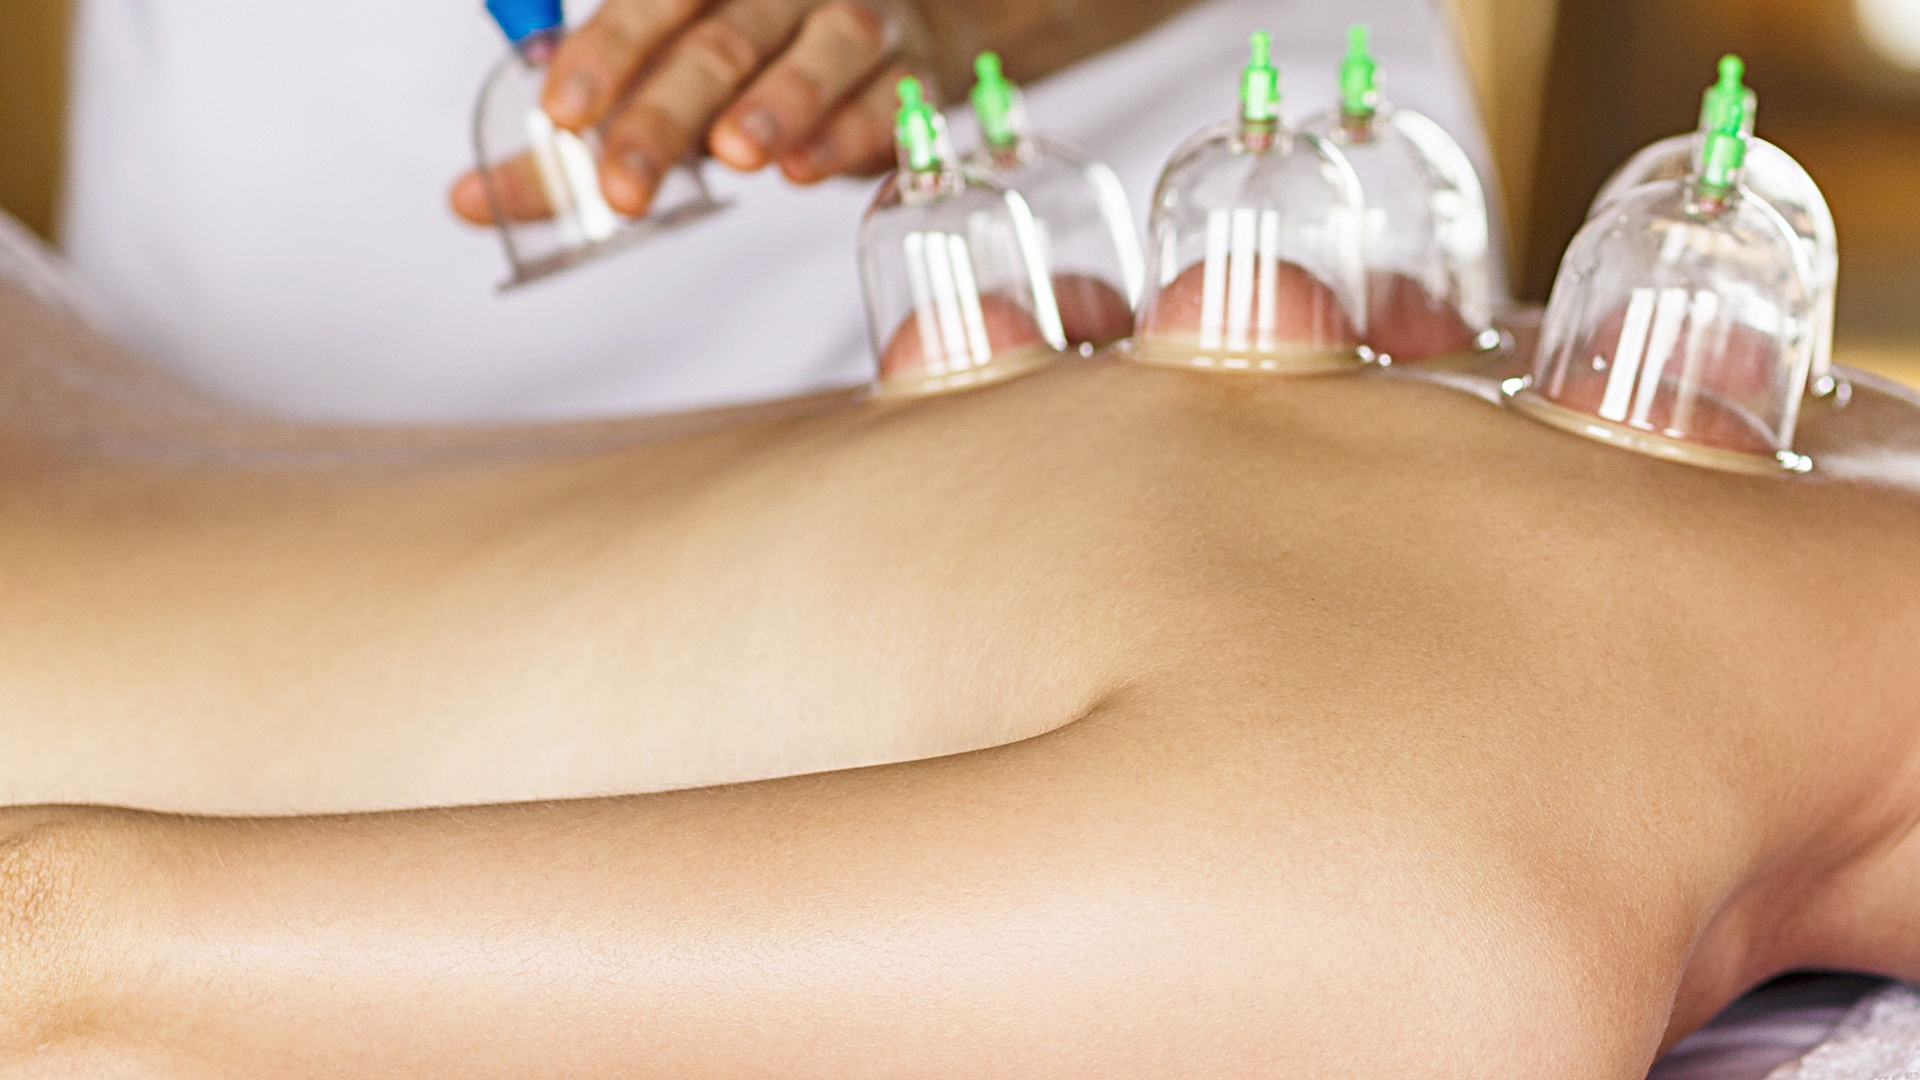 Cupping Treatment    Cupping targets the body's connective tissue. This therapy results in a powerful detoxification of problem tissue, it will often bring trapped metabolic waste, toxins, and cellular debris to the surface in a very visual way, but these are NOT BRUISES. This results in a higher metabolism, more energy, and a reduction in bloating/water weight, and can be used to reduce cellulite. When the tissue is opened back up to circulation and proper lymph drainage, the tissue functions better overall.